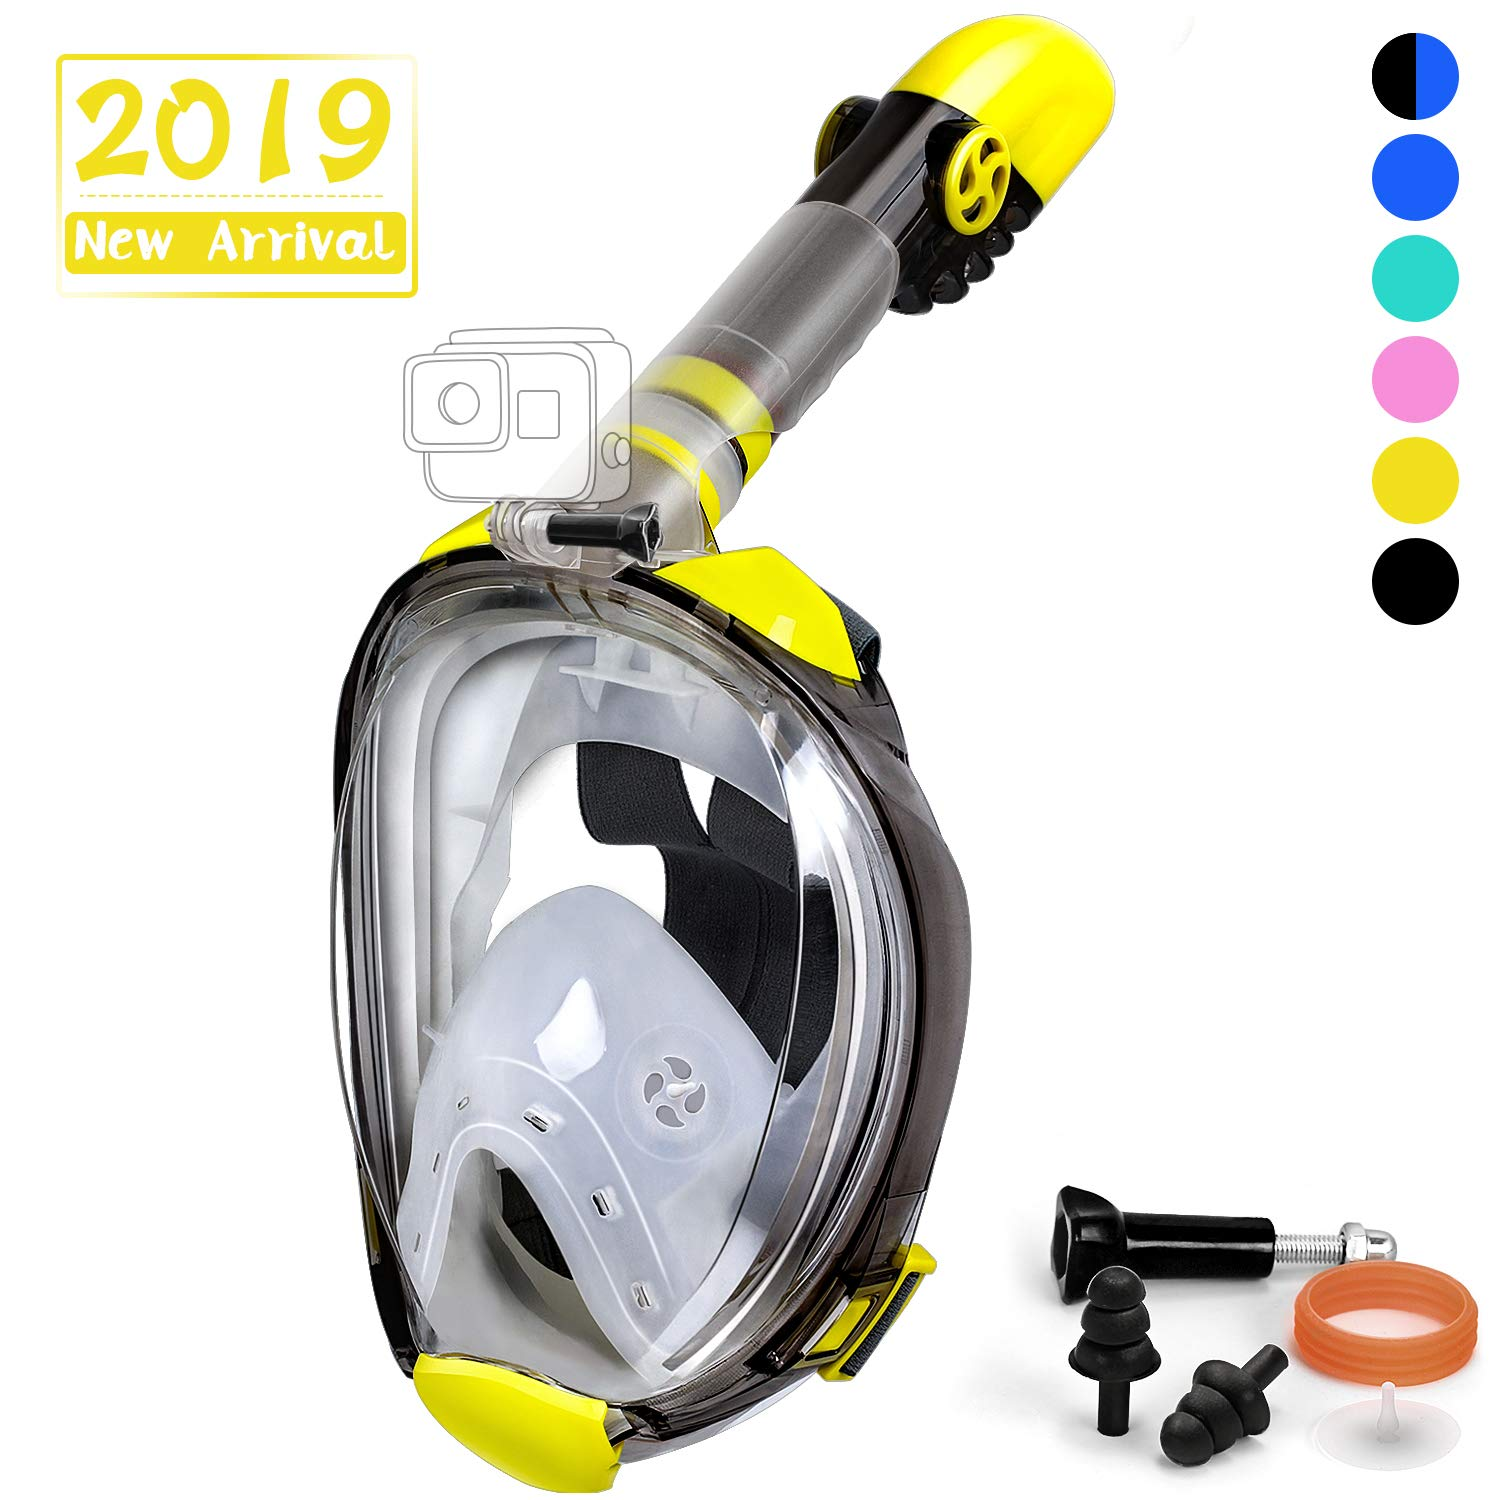 OUSPT Full Face Snorkel Mask, Snorkeling Mask with Detachable Camera Mount, Panoramic 180° View Upgraded Dive Mask with Newest Breathing System, Dry Top Set Anti-Fog Anti-Leak (Yellow, S/M) by OUSPT